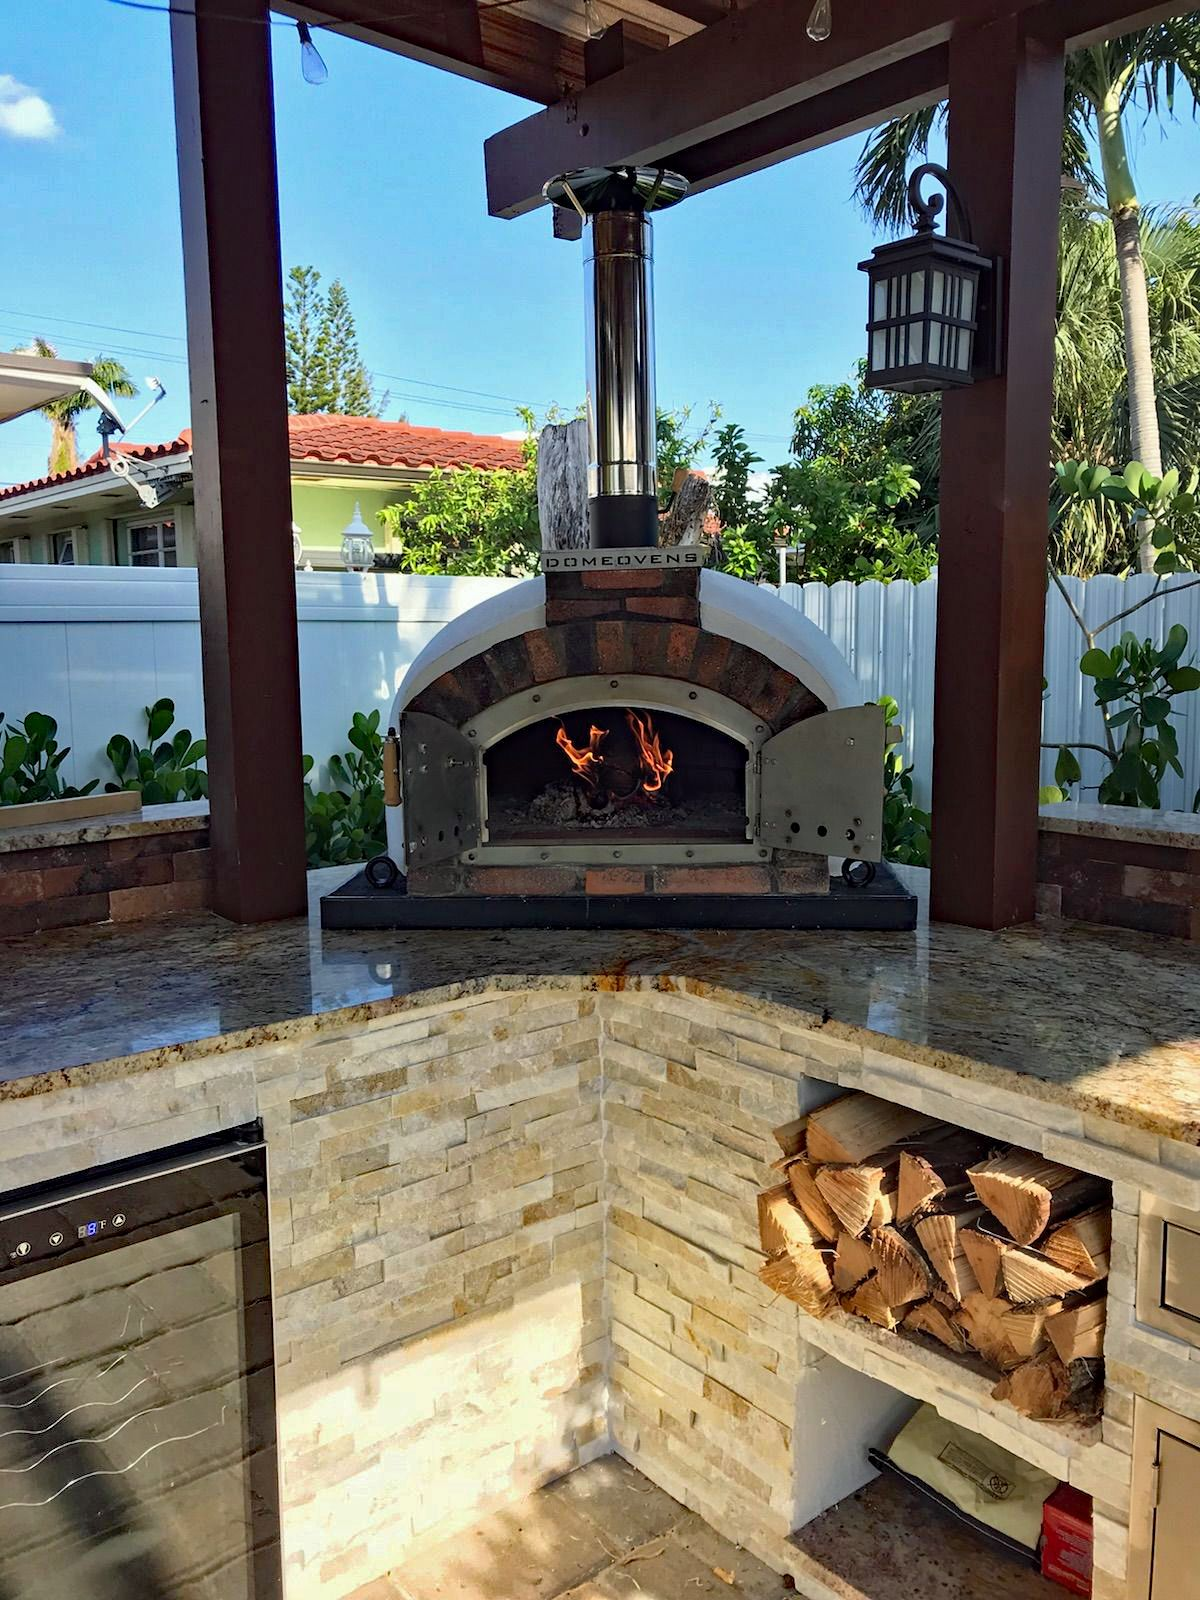 Outdoor kitchen woodfired pizza oven Woodfired pizza ovens